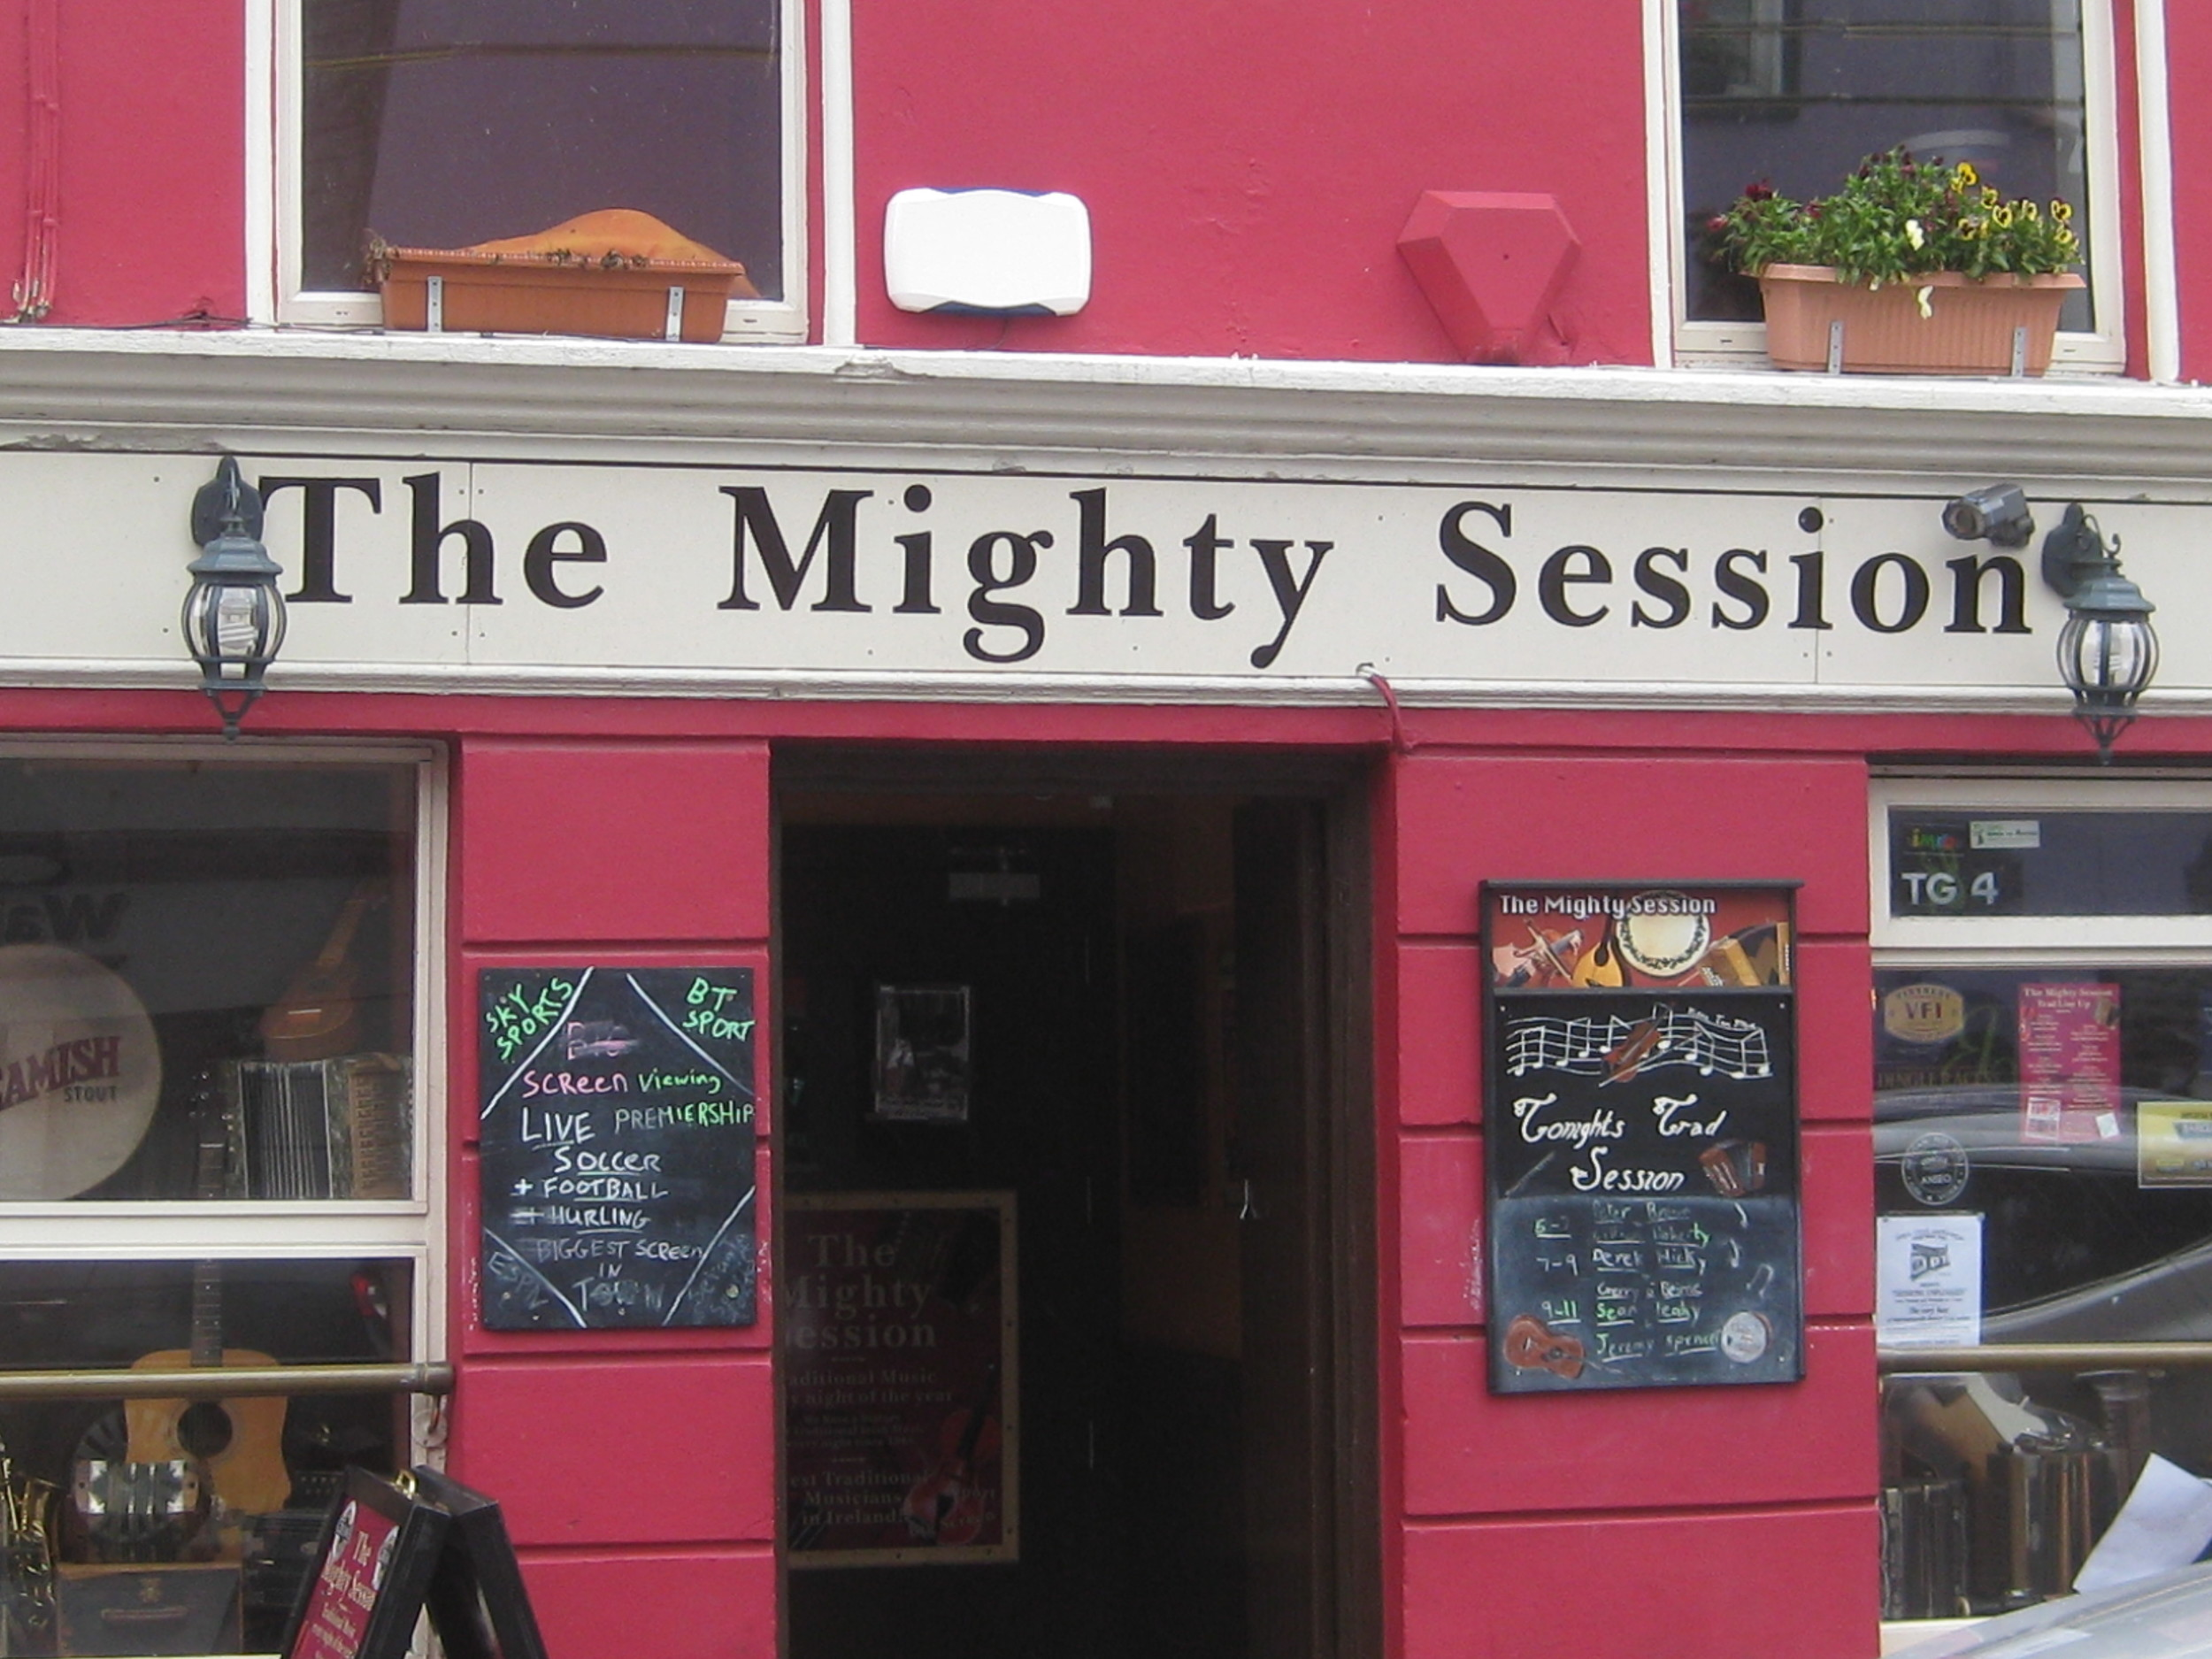 The MIghty Session is a pub in Dingle, Ireland where musicians gather to connect, comfort, enliven and inspire. ..